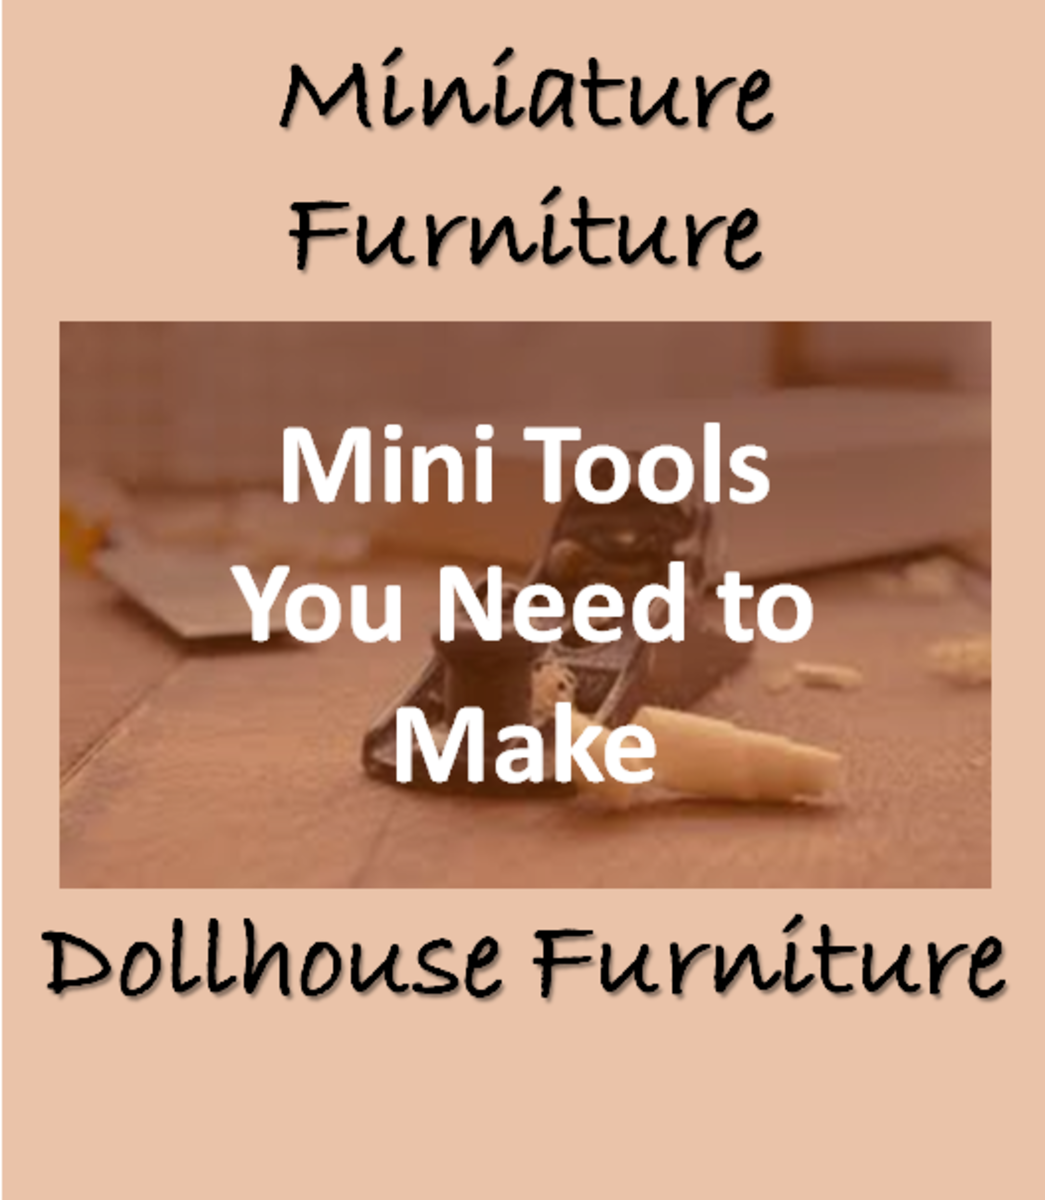 Hand Tools You Need to Make Dollhouse Furniture